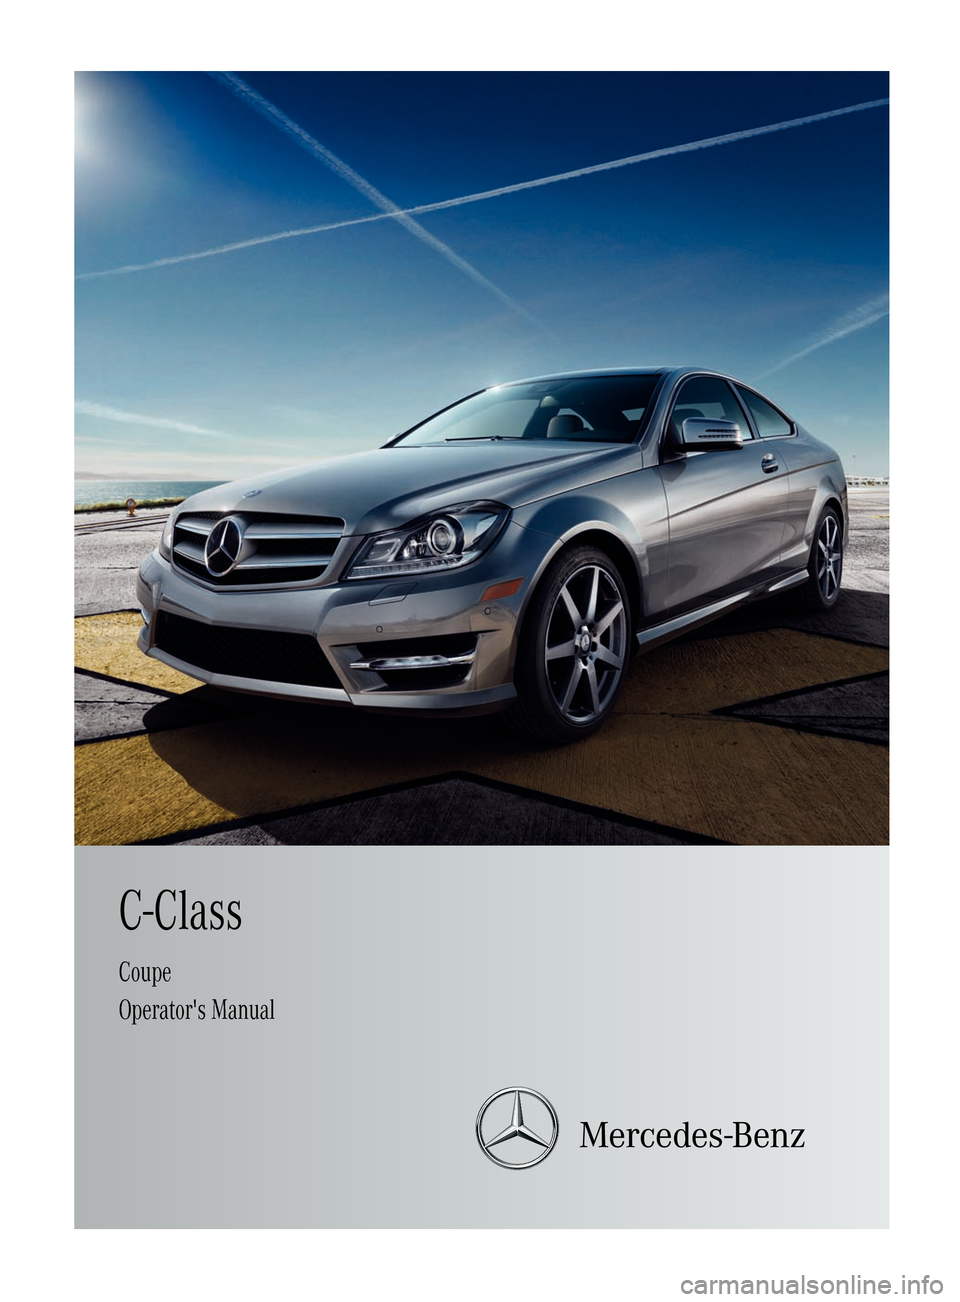 2012 mercedes benz c250 coupe owners manual